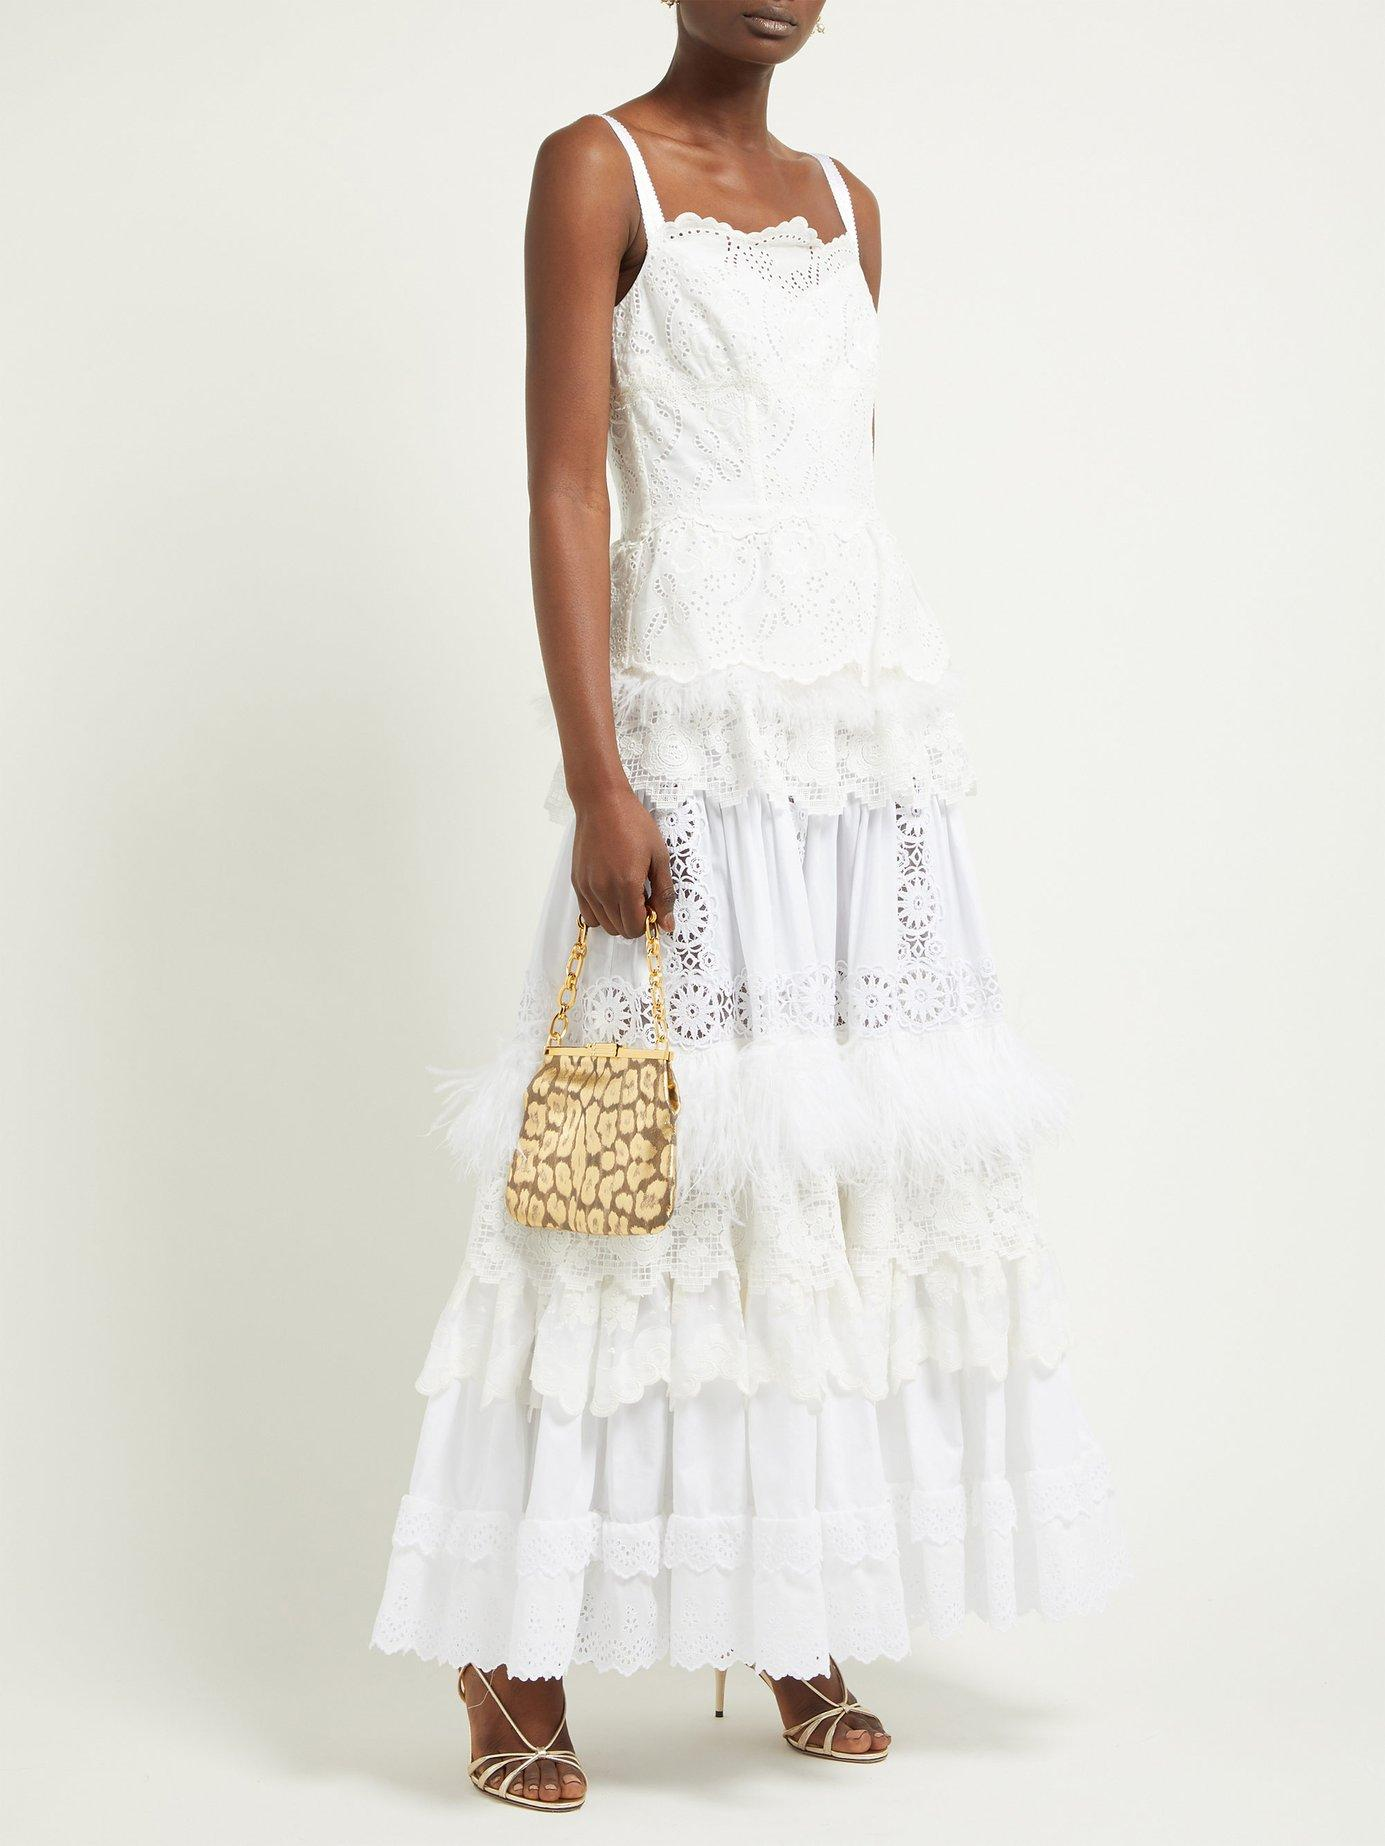 29896e5ad98dad Lyst - Dolce   Gabbana Floral Cotton Blend Broderie Anglaise Gown in White